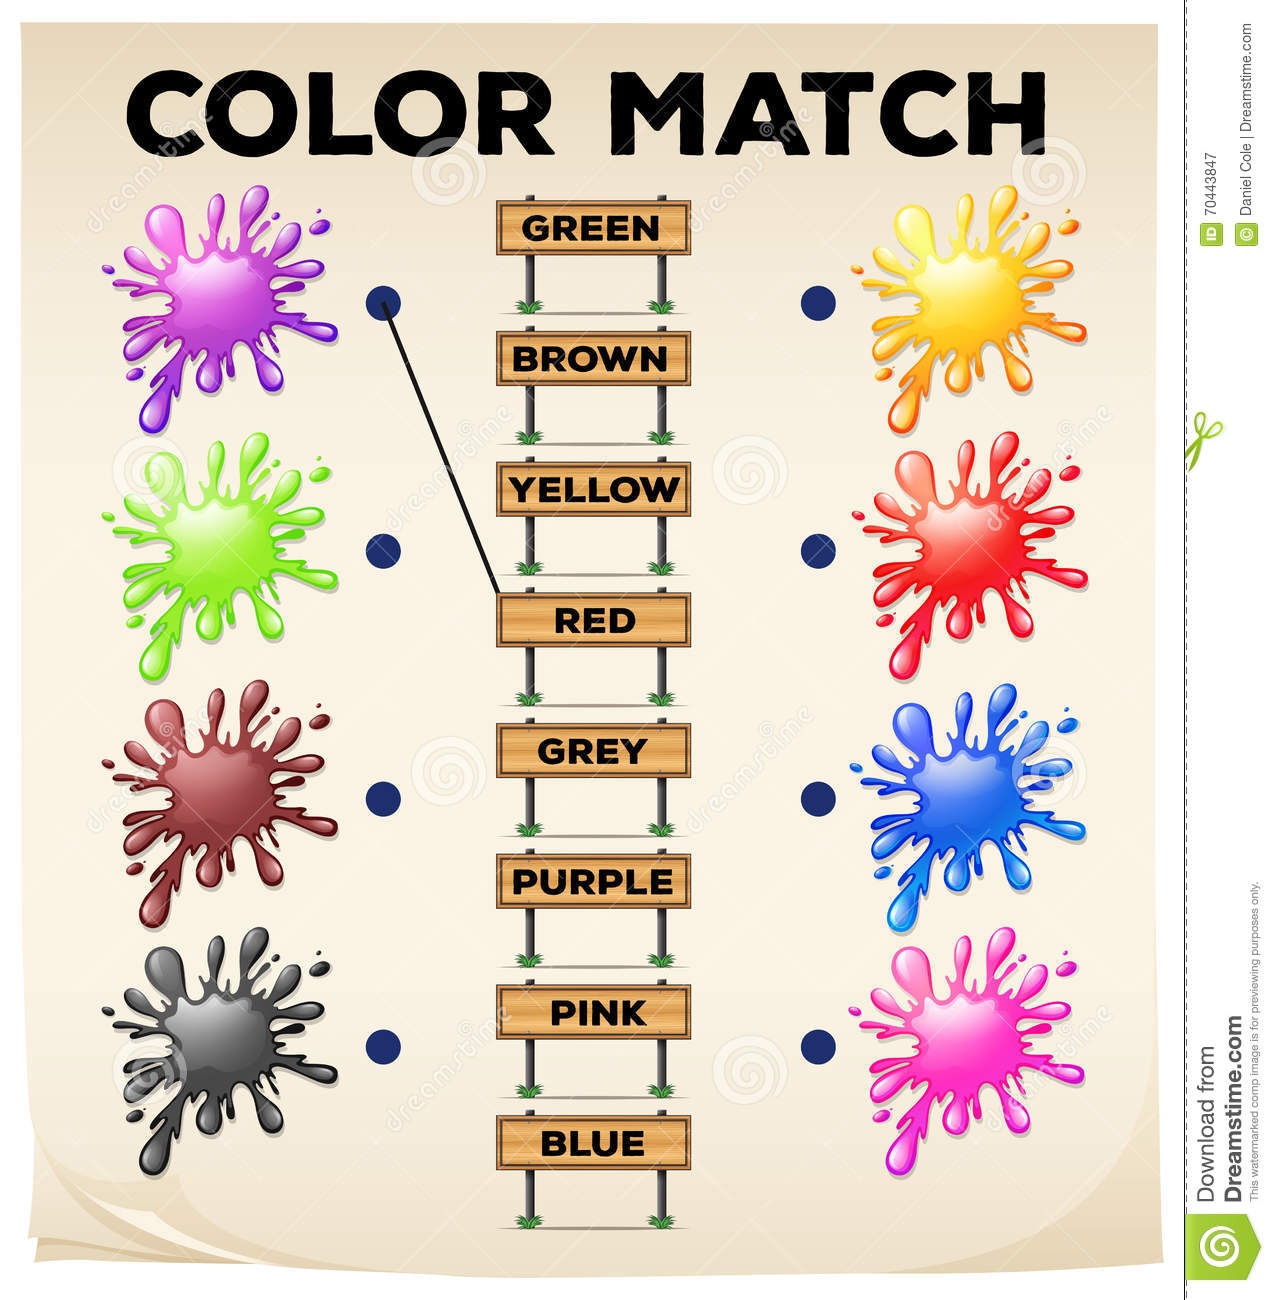 Matching Worksheet With Colors And Words Stock Illustration